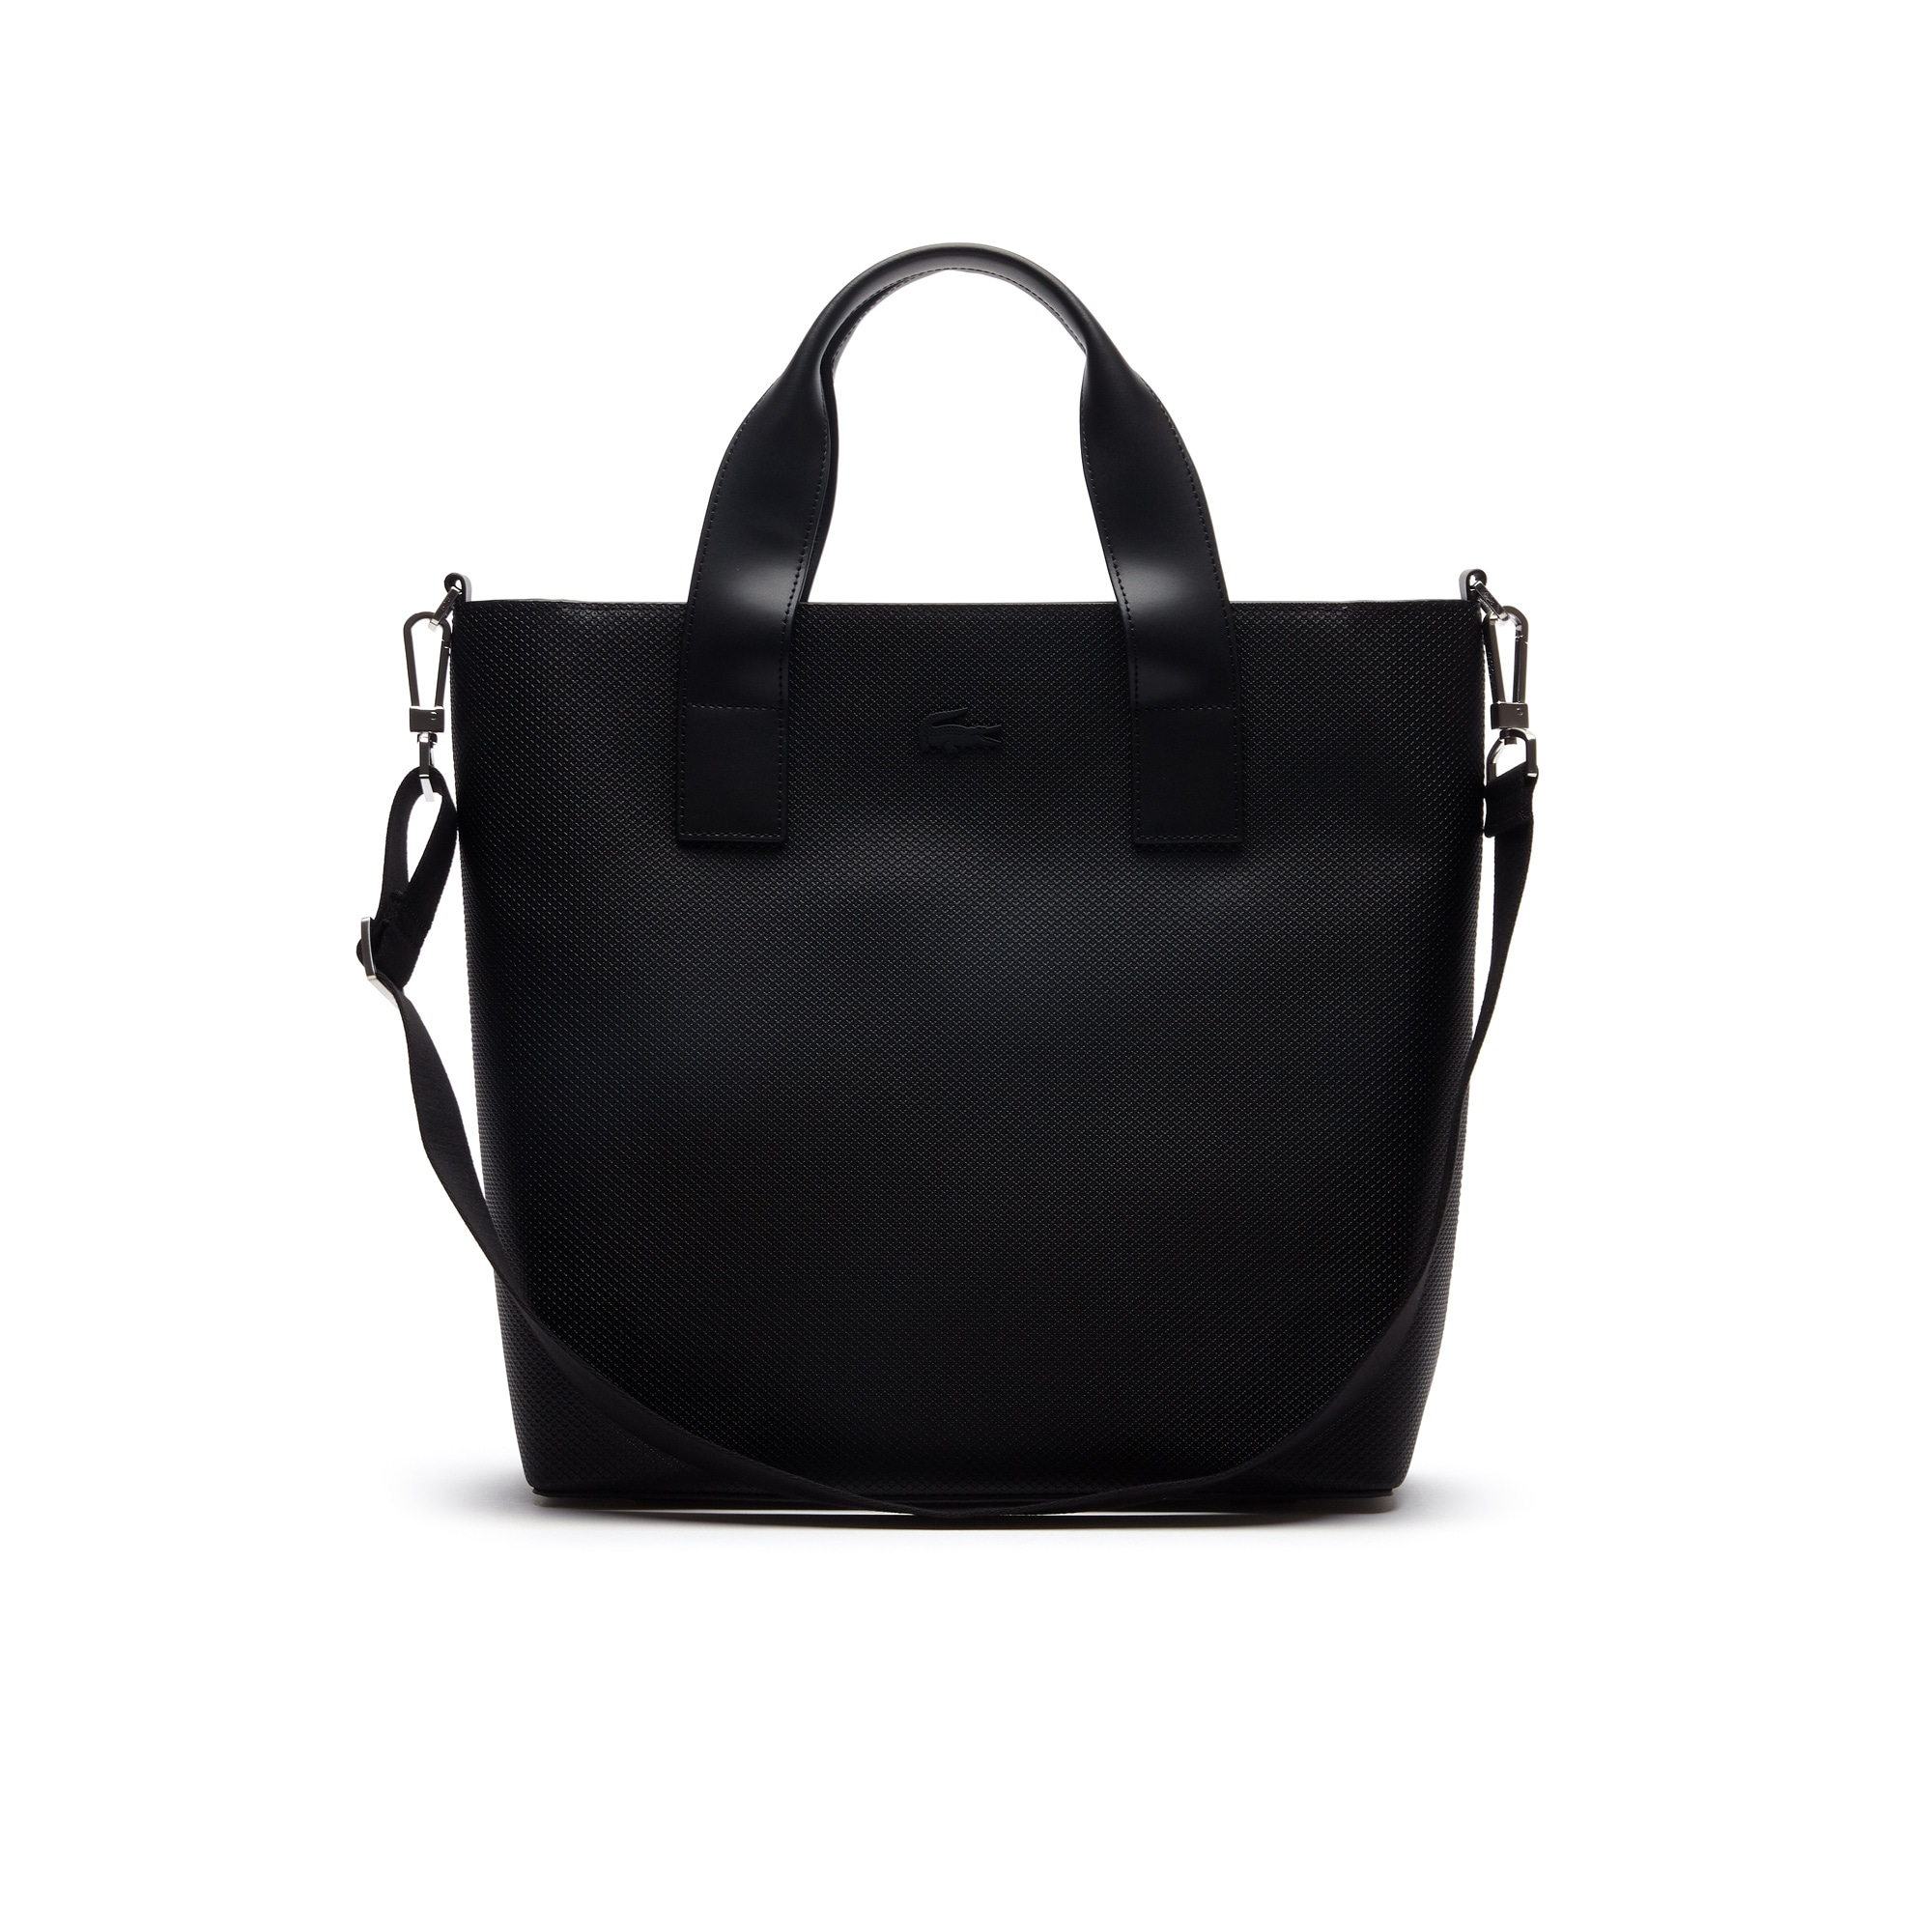 Men's Chantaco Piqué Leather Vertical Tote Bag